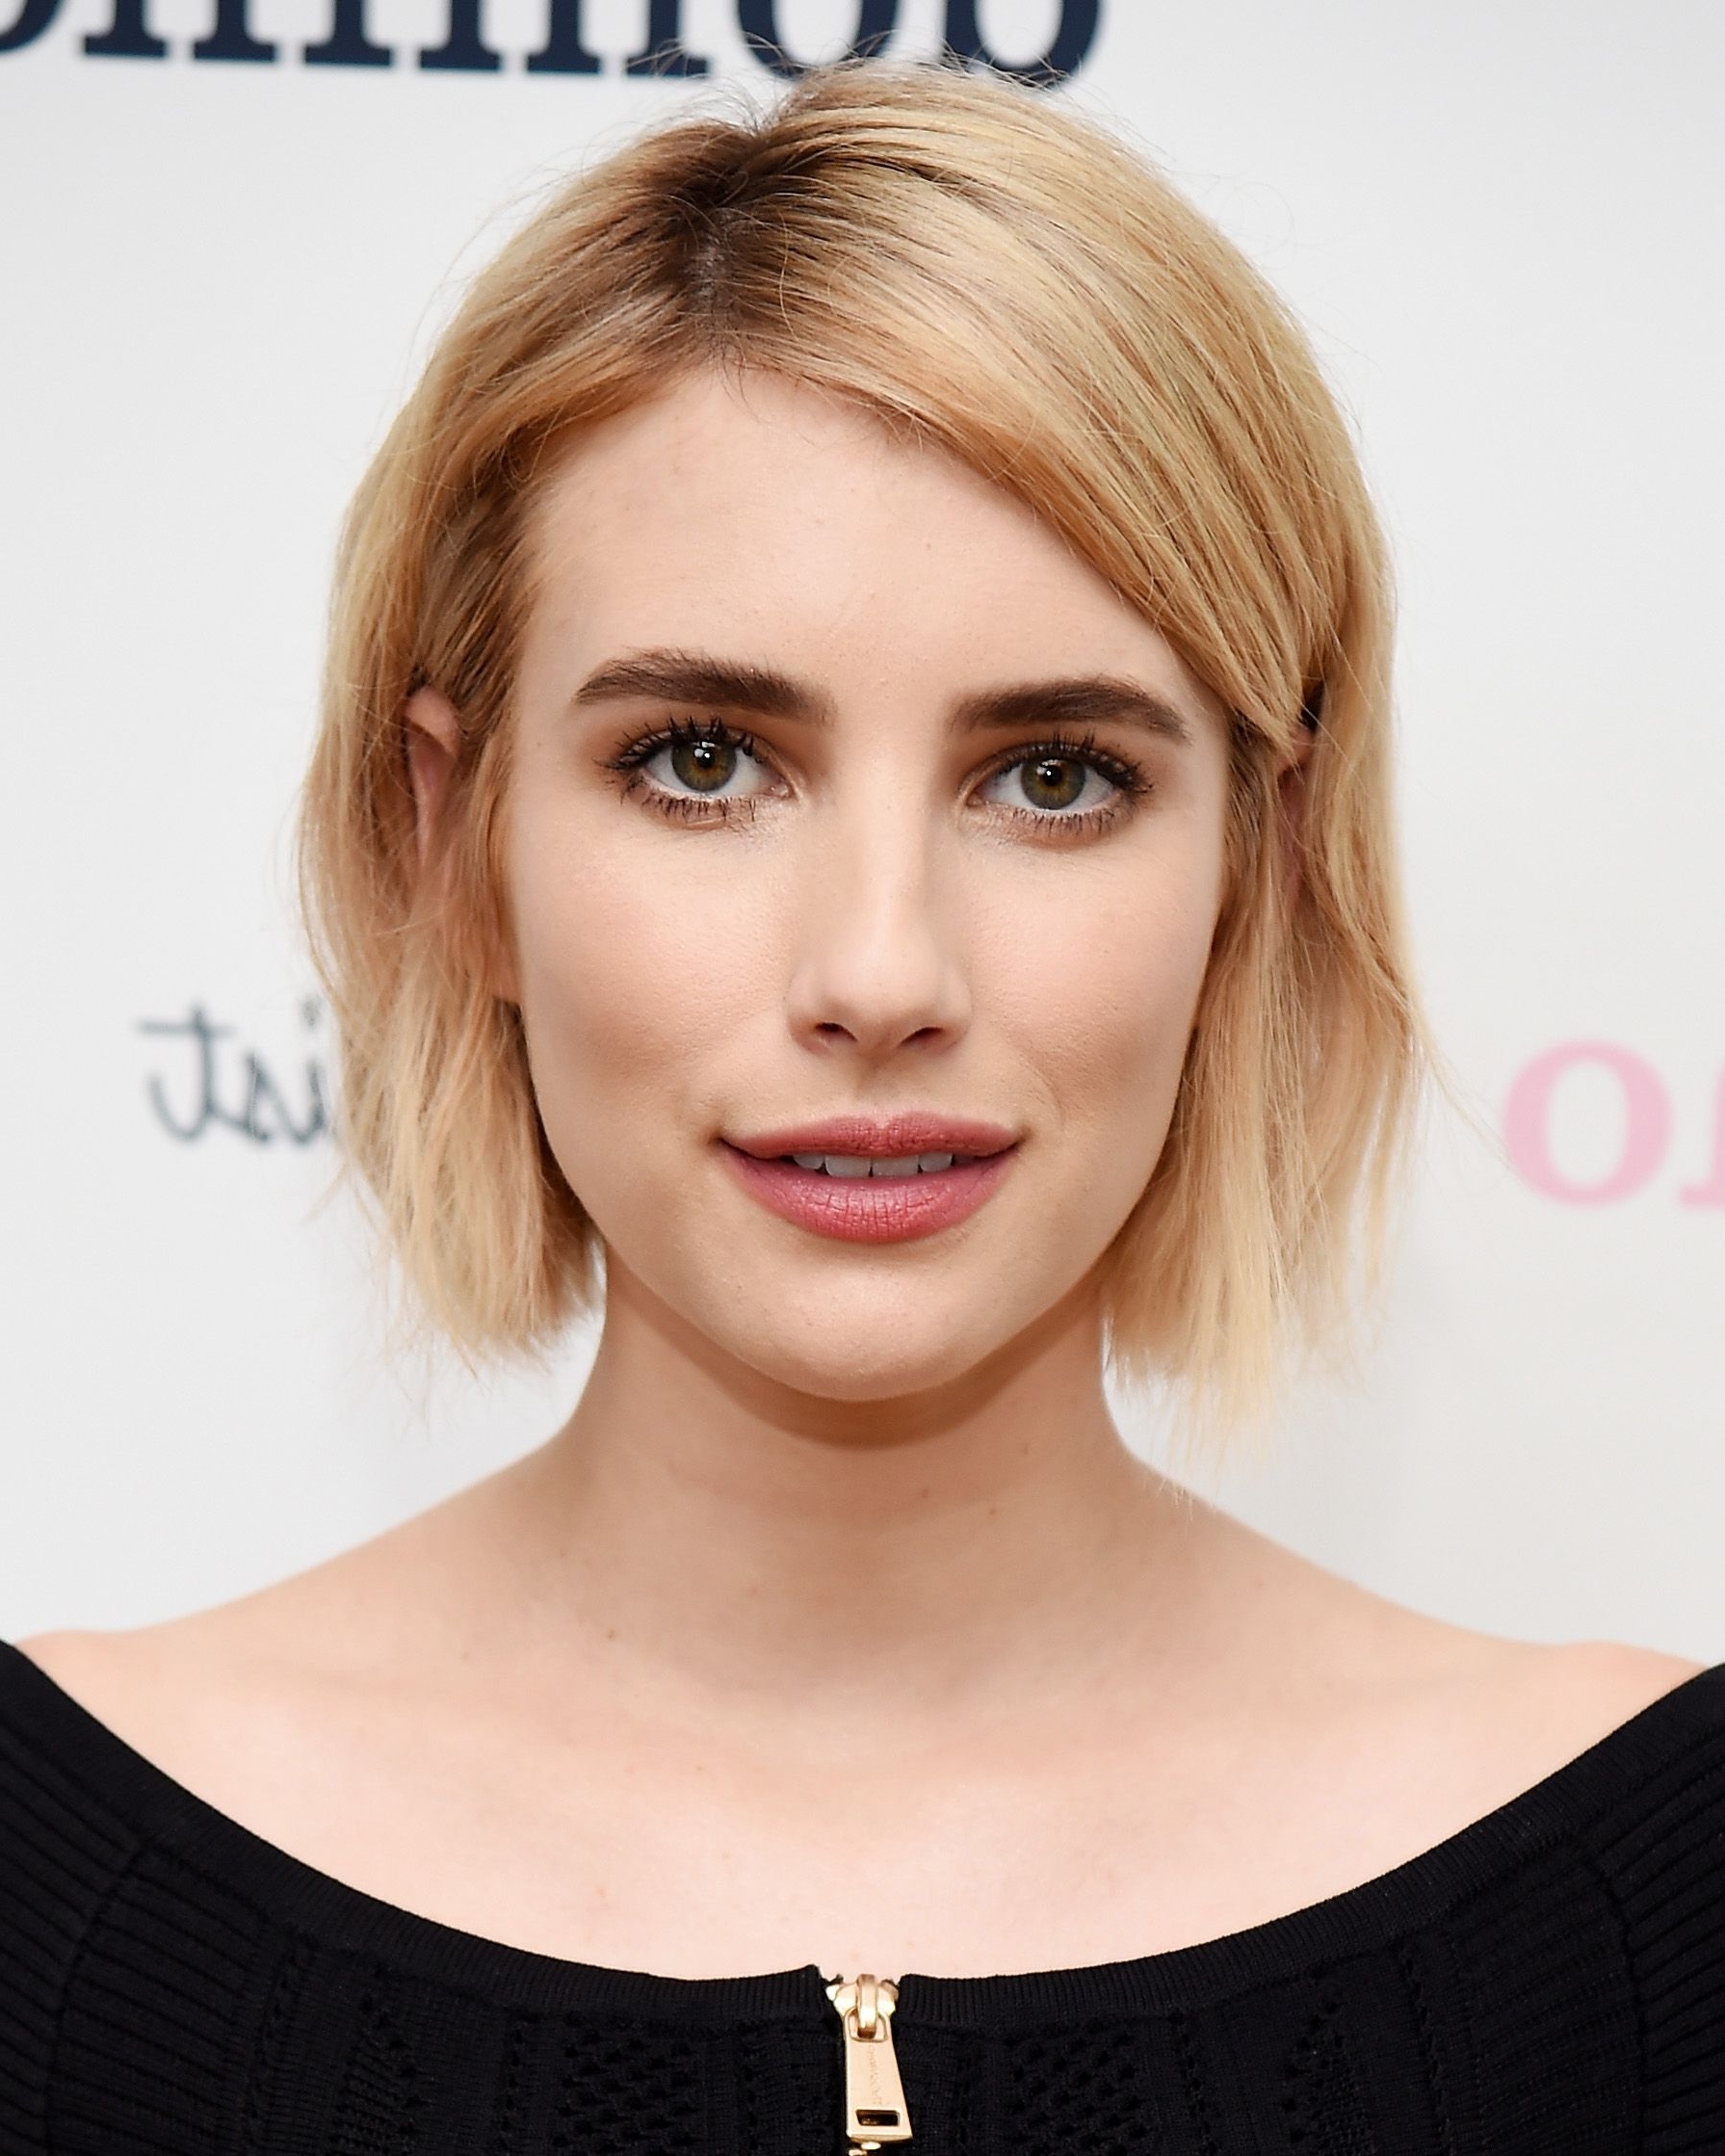 39 Bob Hairstyles For 2019 – Bob Haircuts To Copy This Year Pertaining To Preferred Old Hollywood Medium Hairstyles (Gallery 20 of 20)